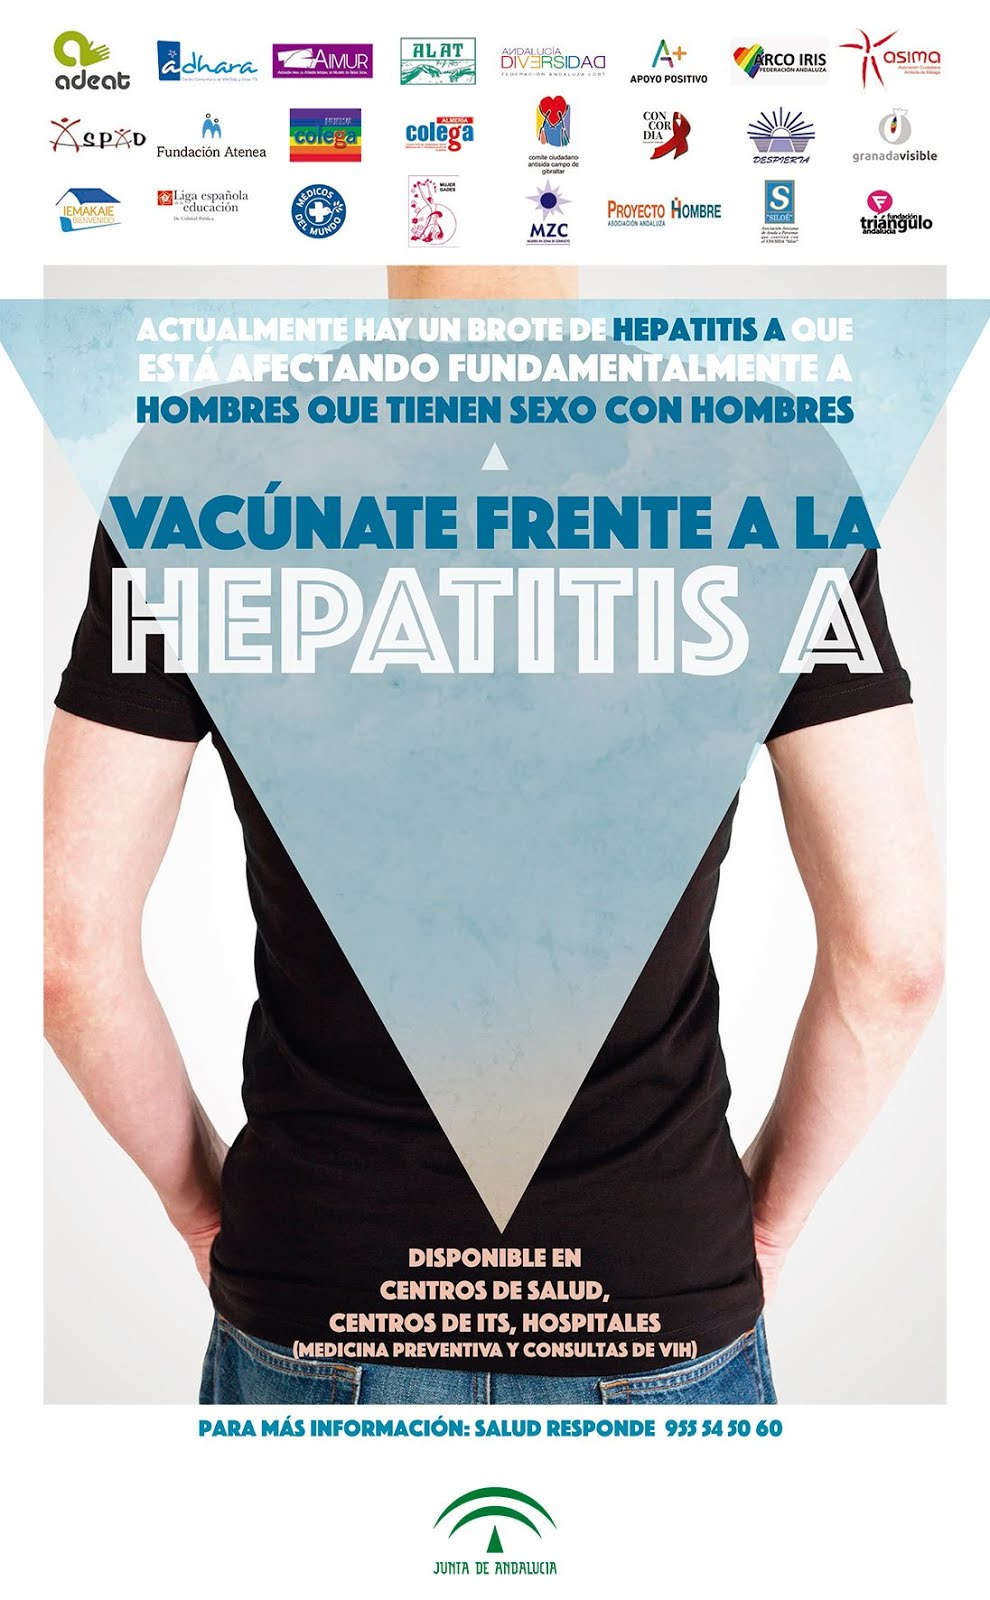 ¡Vacúnate frente a la Hepatitis A!